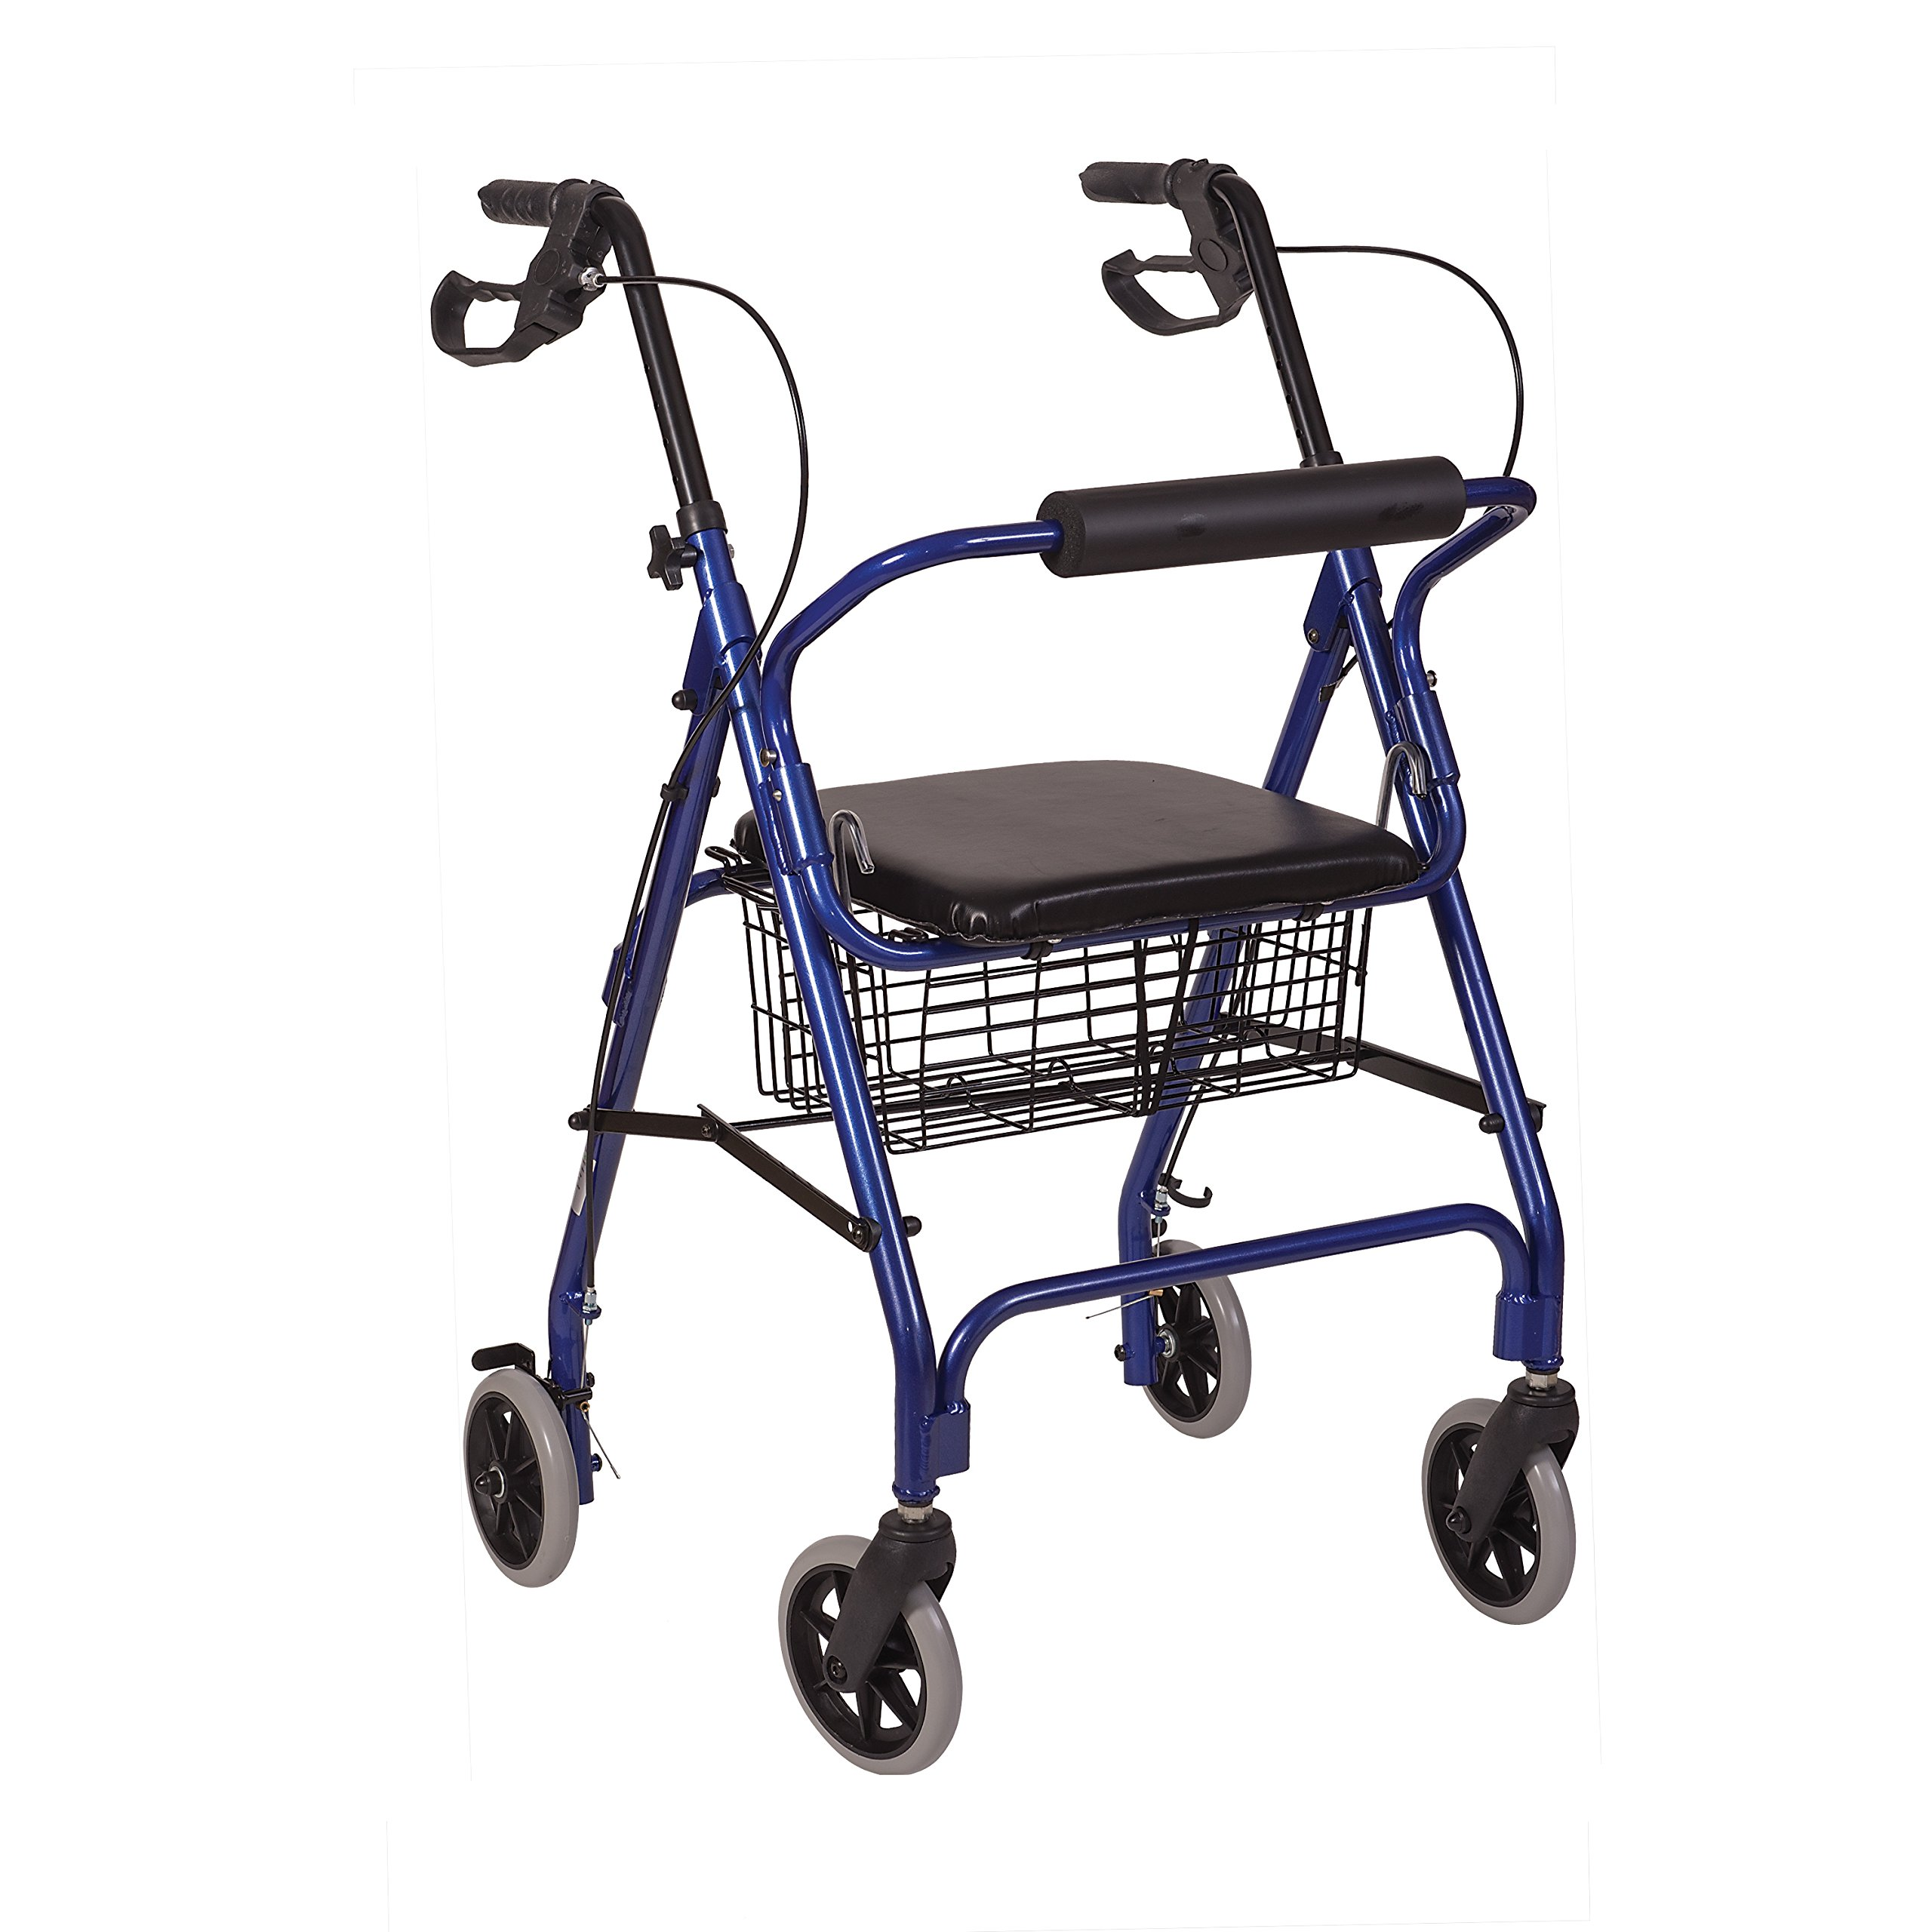 HealthSmart Rollator Walker, Adjustable Handle Height Folding Walker, Light Weight Aluminum Walker With Basket, Cushioned Seat and Padded Backrest, Royal Blue by MABIS DMI Healthcare